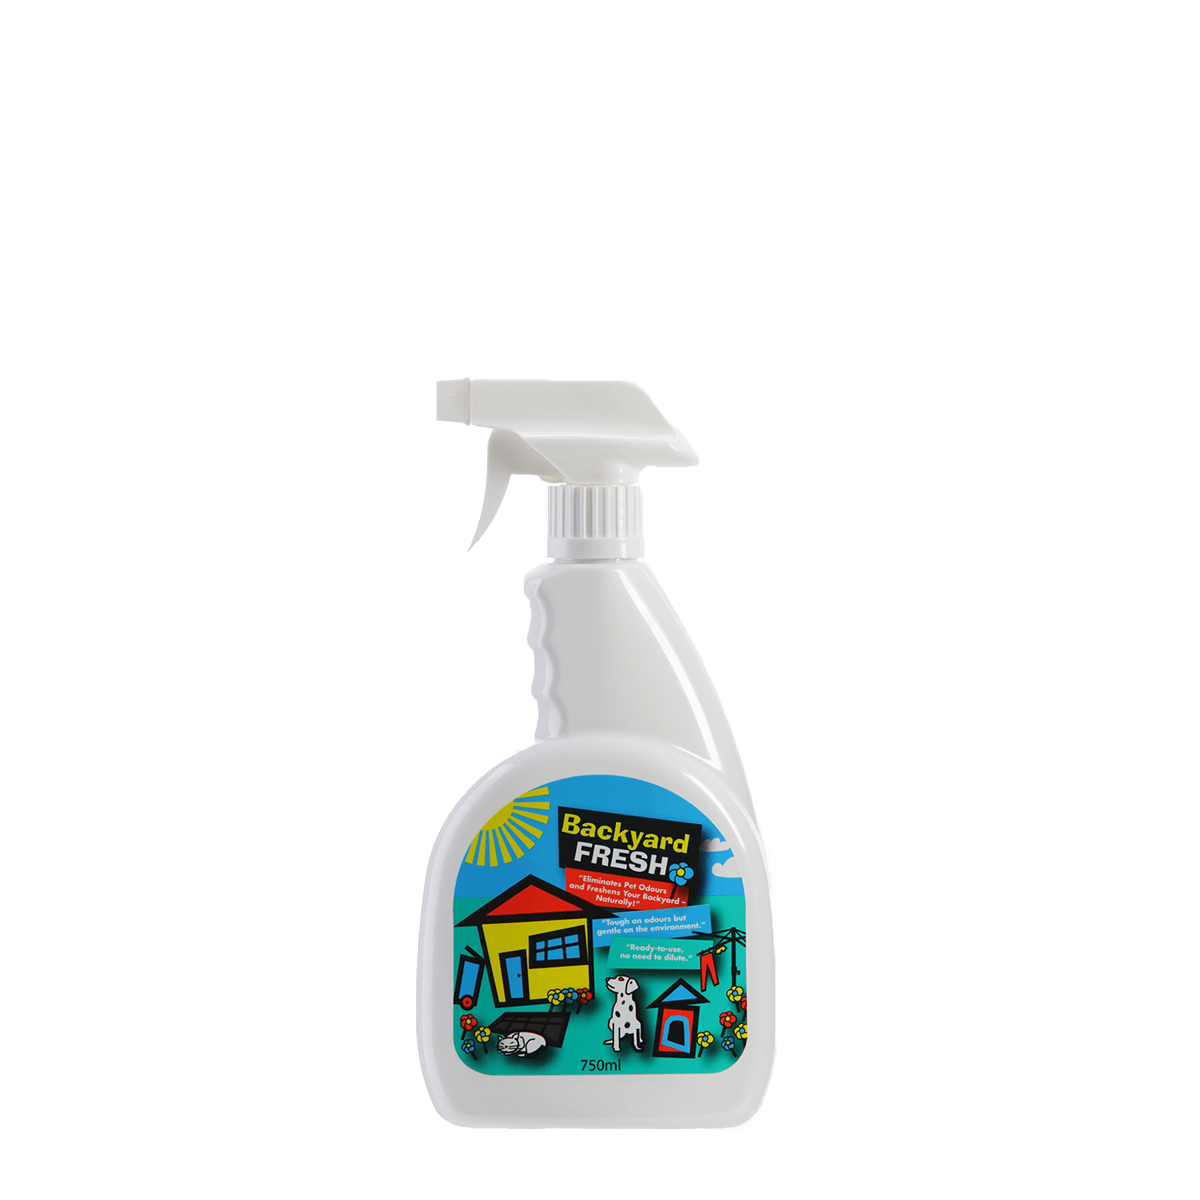 backyardfresh 750ml